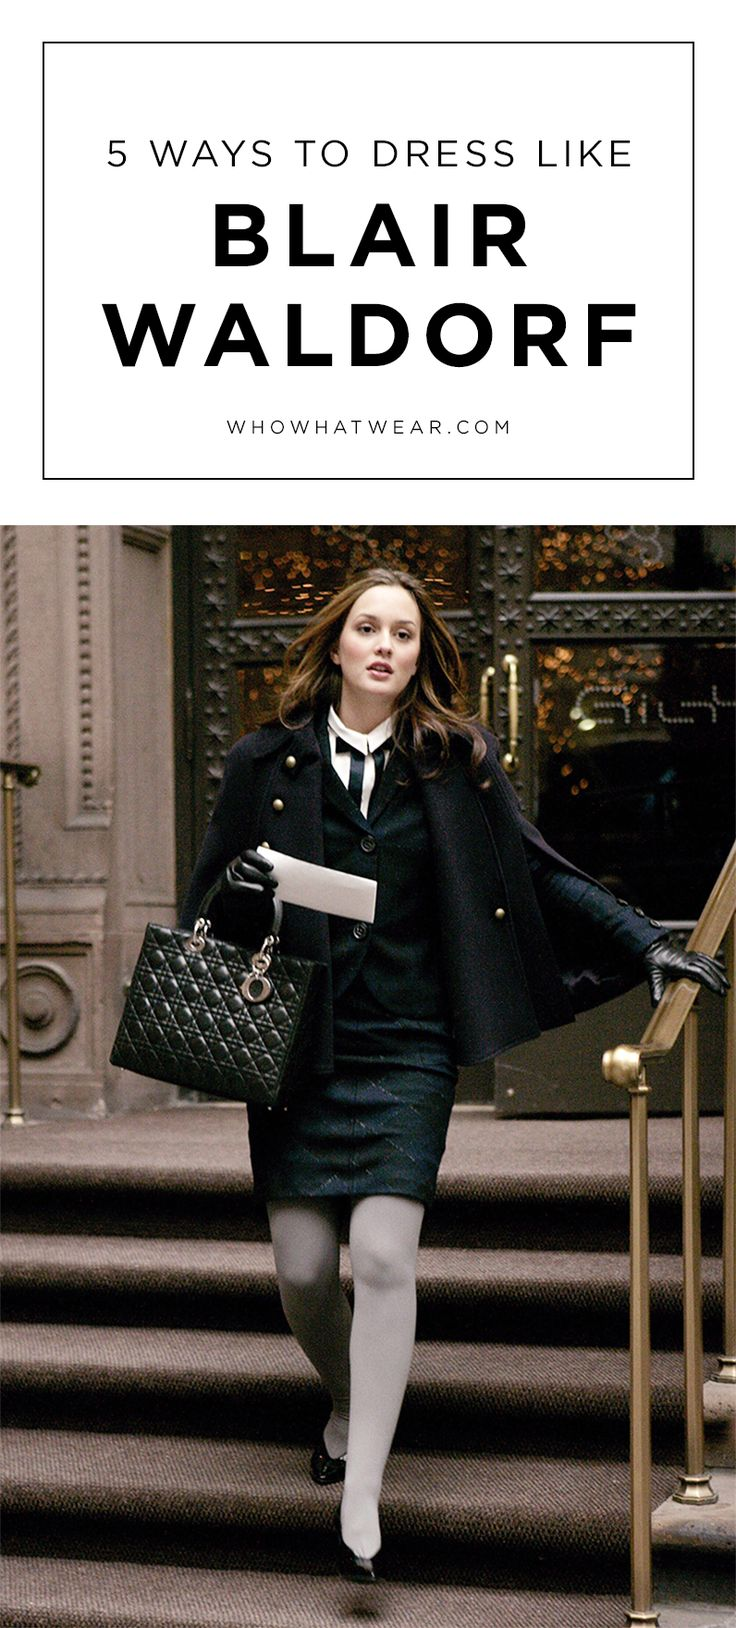 The ultimate guide to dressing like Blair Waldorf